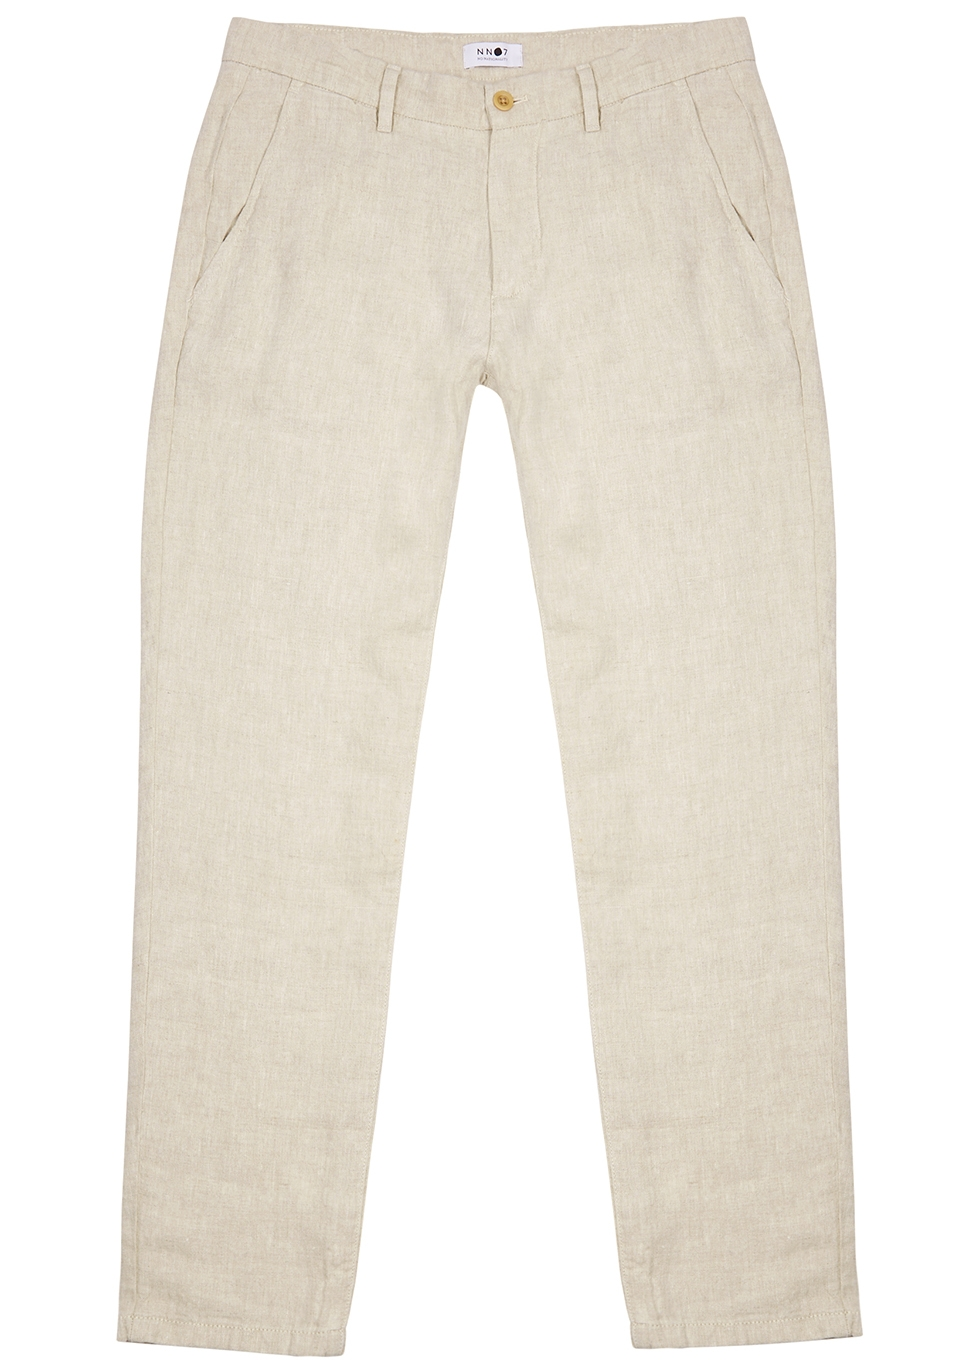 Karl ecru linen trousers